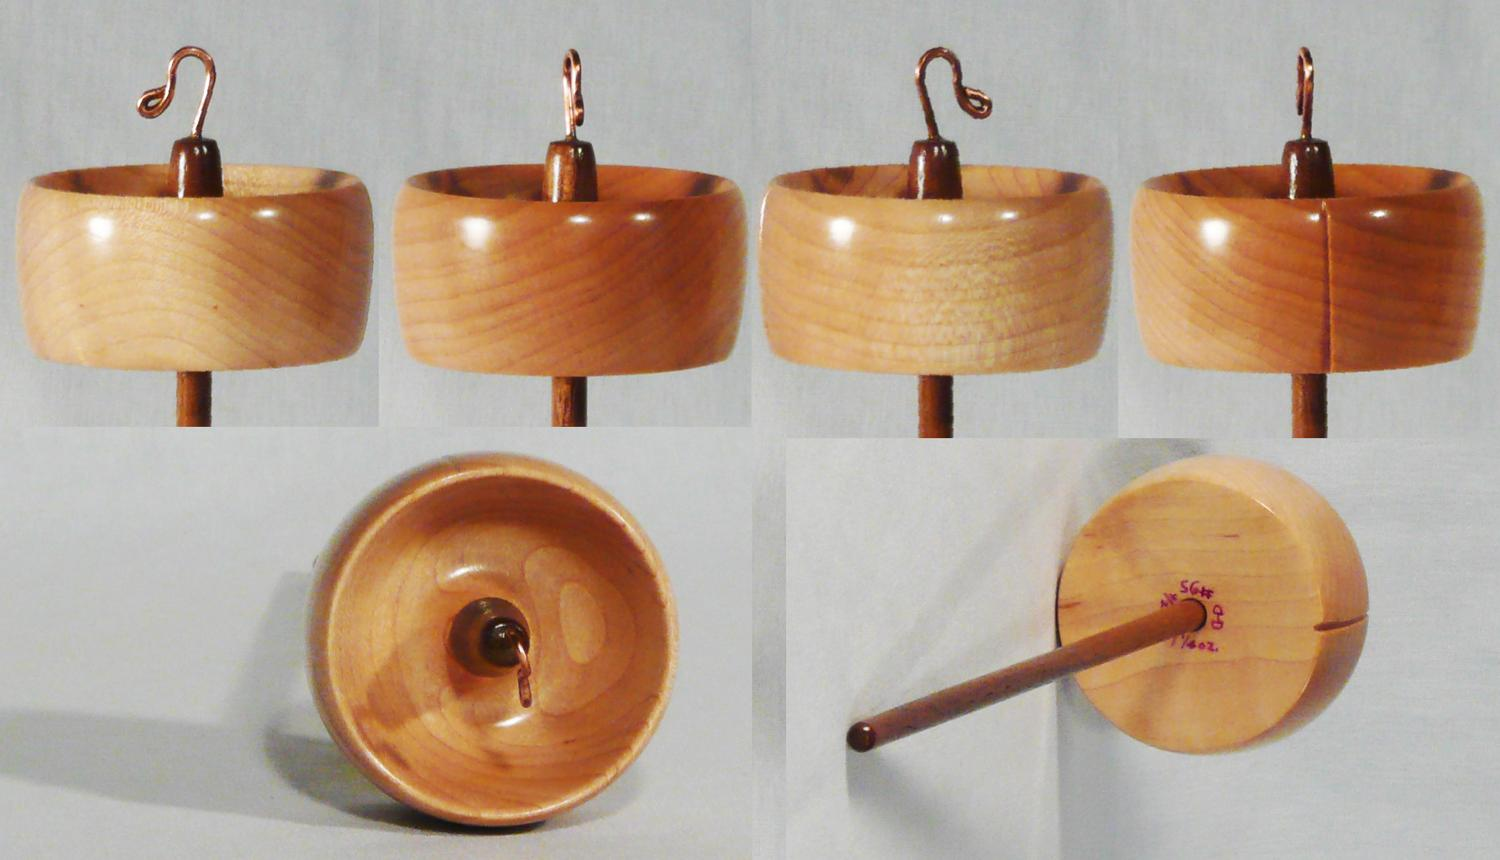 Hand turned high whorl drop spindle by Cynthia D. Haney of Quilted Maple on Walnut.